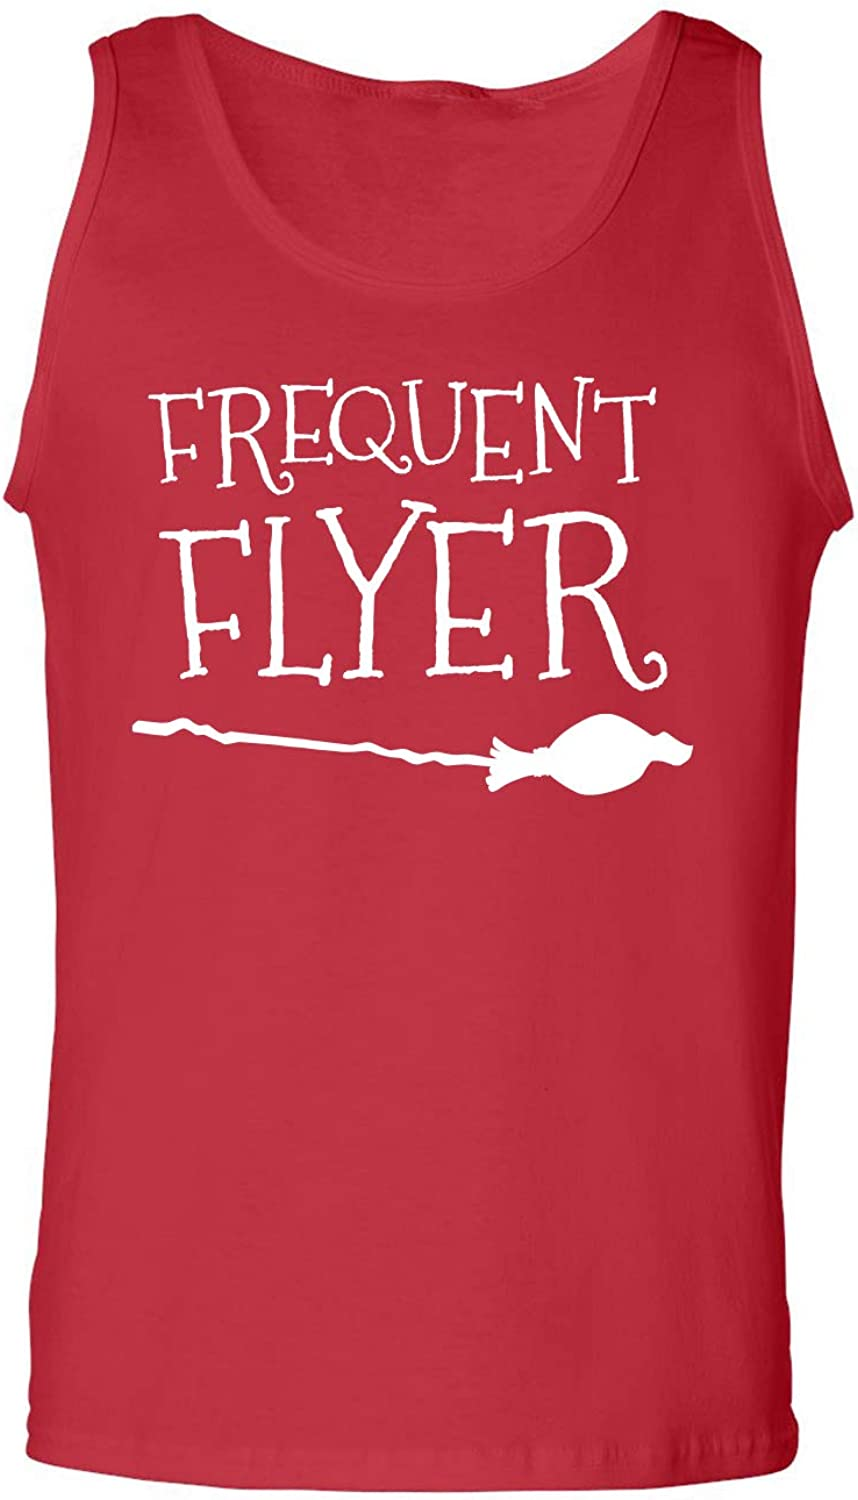 Frequent Flyer Adult Tank Top in Red - XX-Large